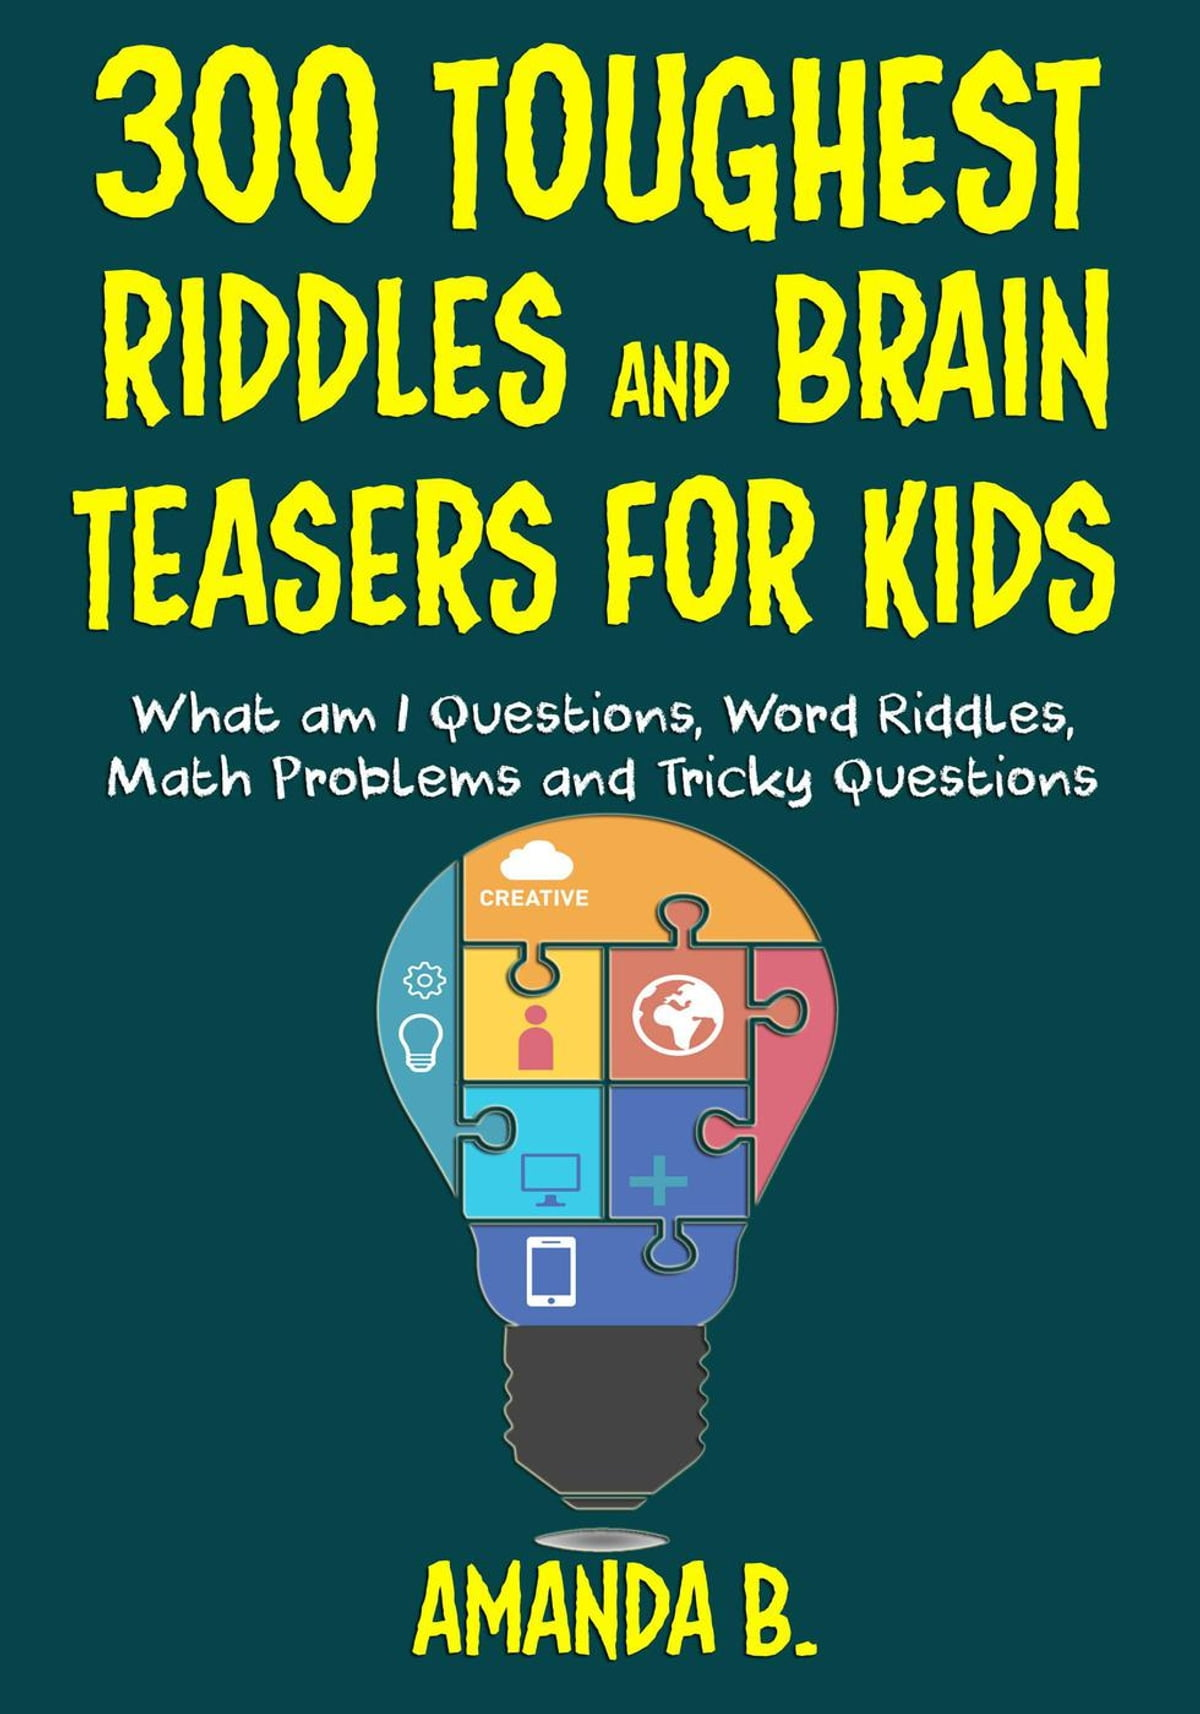 300 Toughest Riddles And Brain Teasers For Kids Ebook By